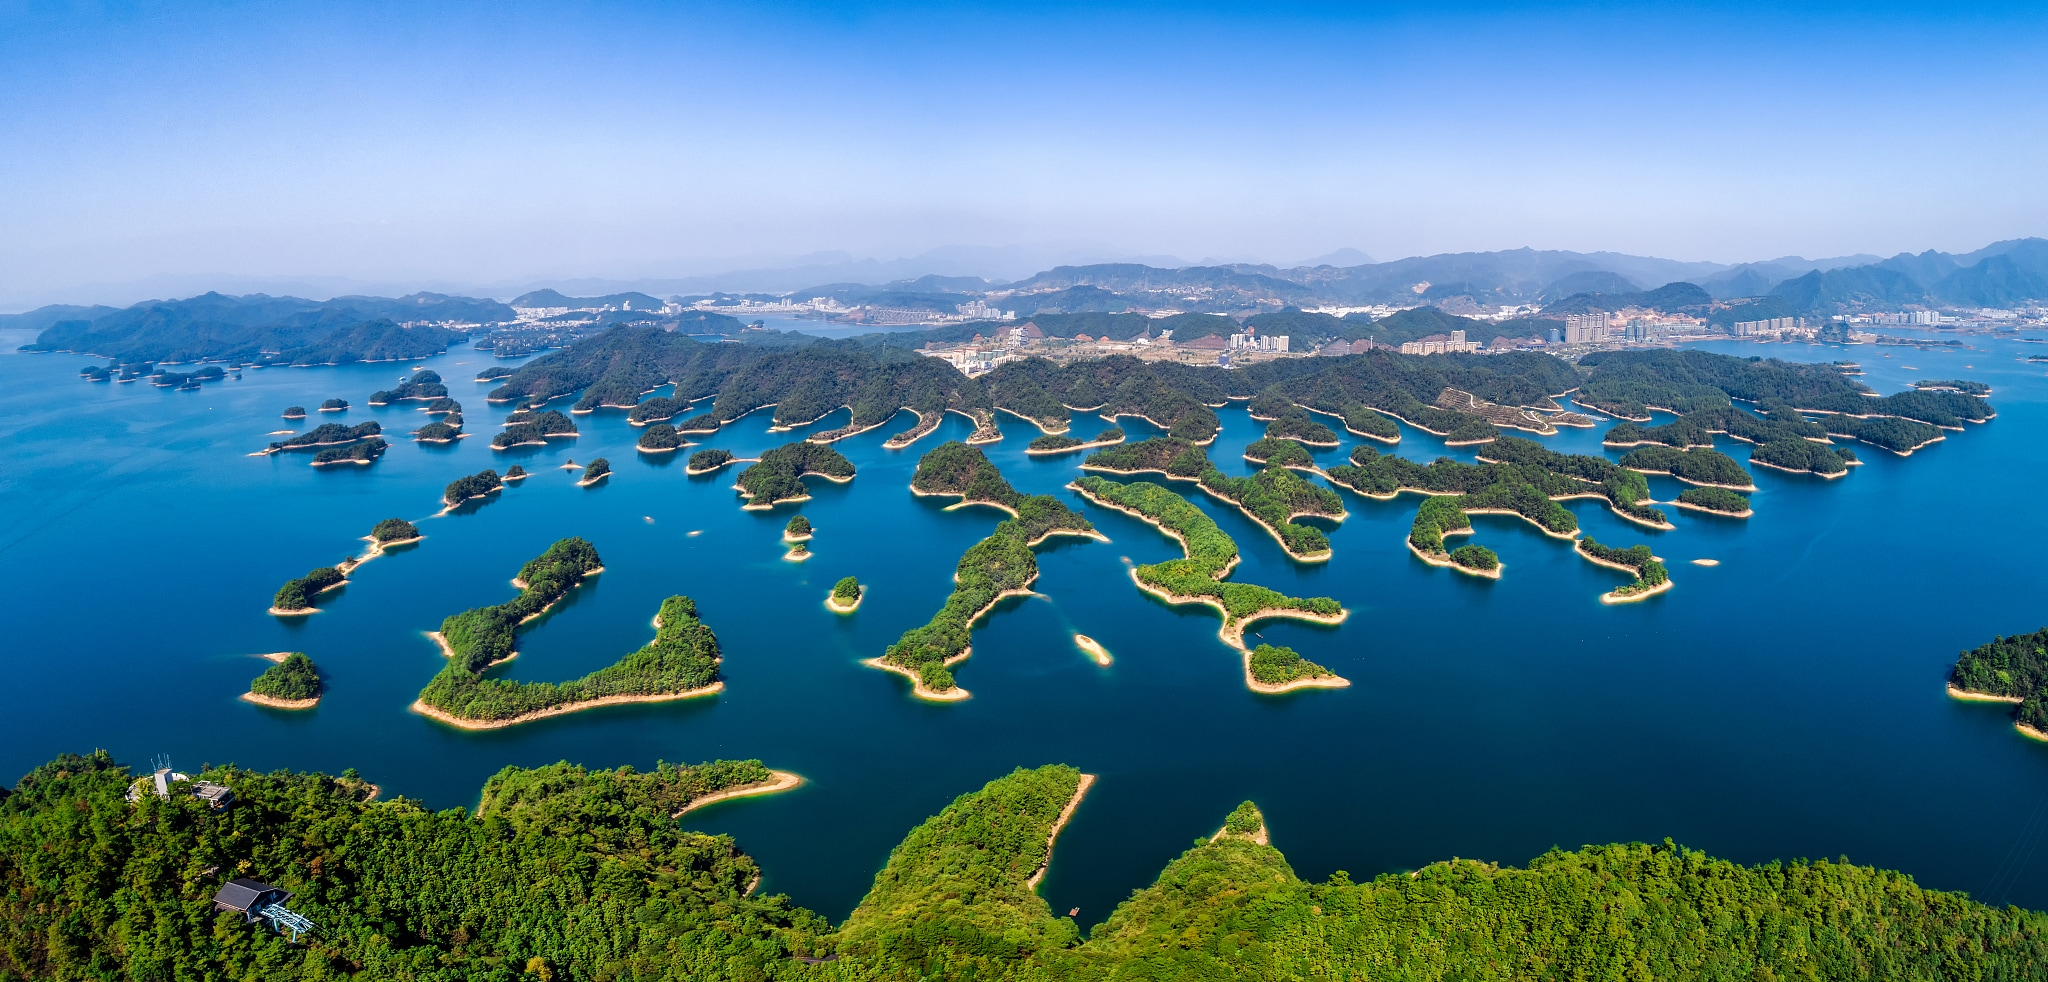 Qiandao Lake - Southeast Lake District Admission Ticket